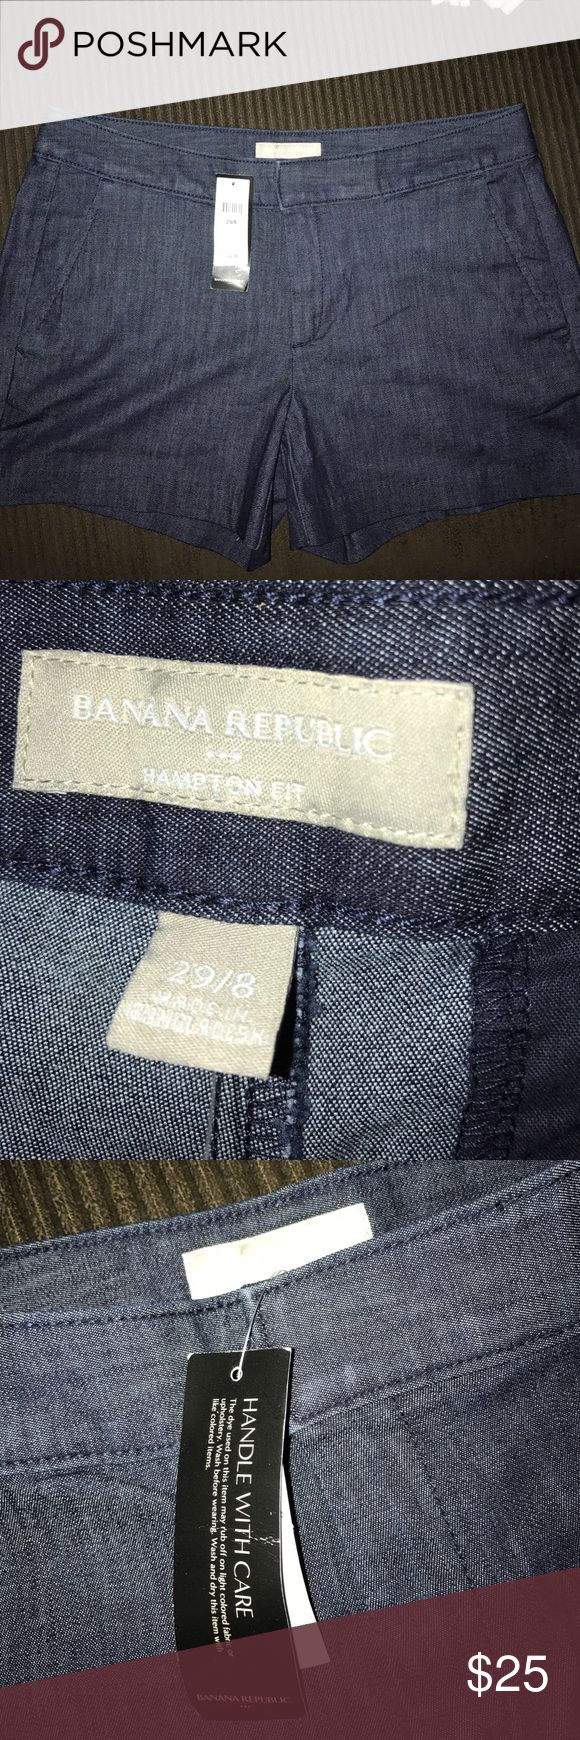 NWT-----Banana republic shorts NWT---Banana republic shorts there like a Jean material but they are  classy and not the weight of jeans they have side  pockets in the front and slit pockets on the back !!! Can wear to dress up or go casual !! Banana Republic Shorts